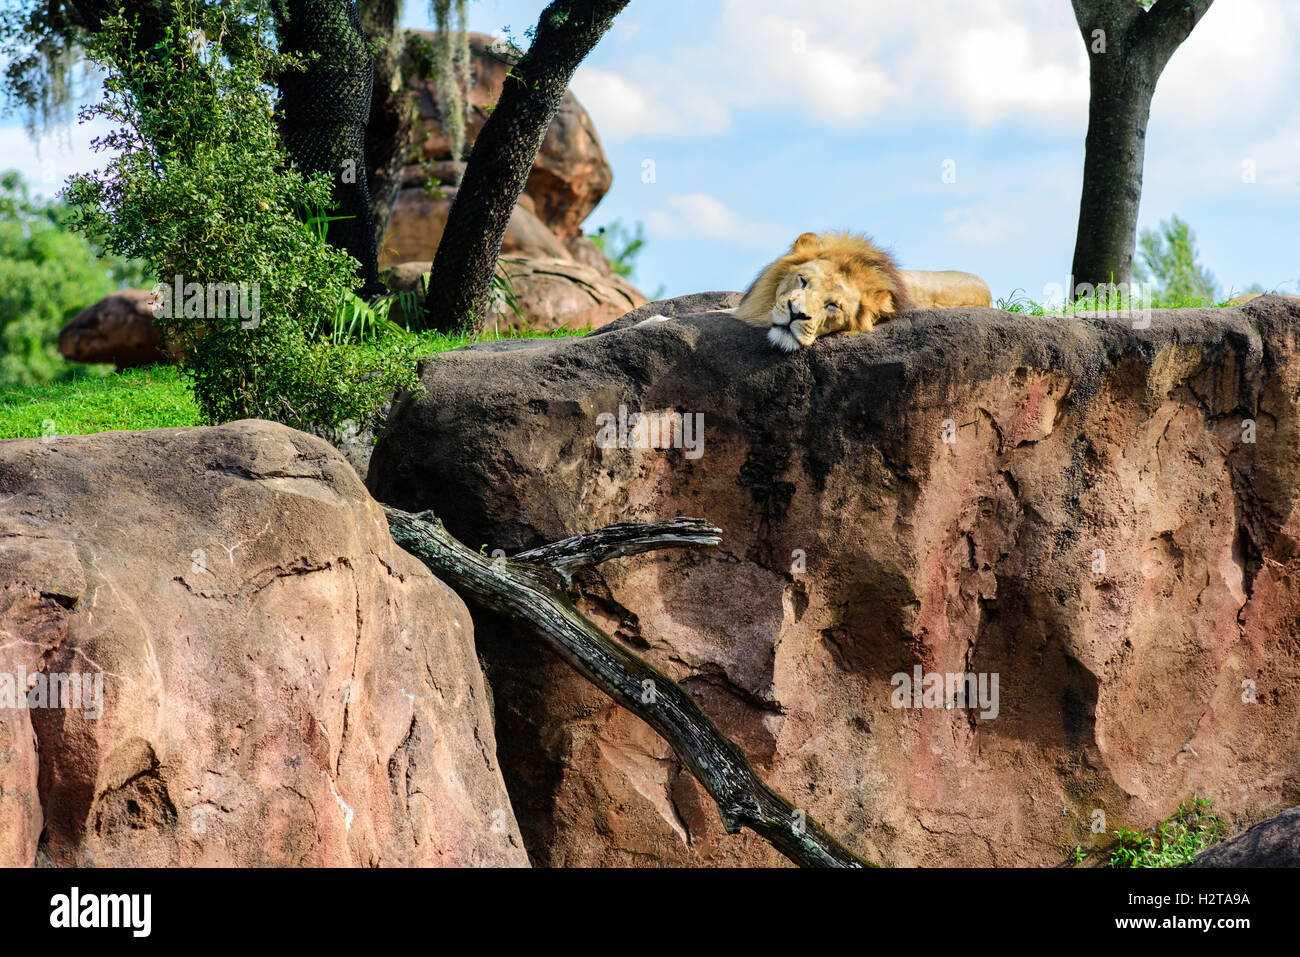 the lion king royalty in the animal kingdom Animal stereotyping in general many animal stereotypes reflect anthropomorphic notions unrelated to animals' true behaviors carnivores, for instance, will be viewed as antagonists and their prey as the underdogs.